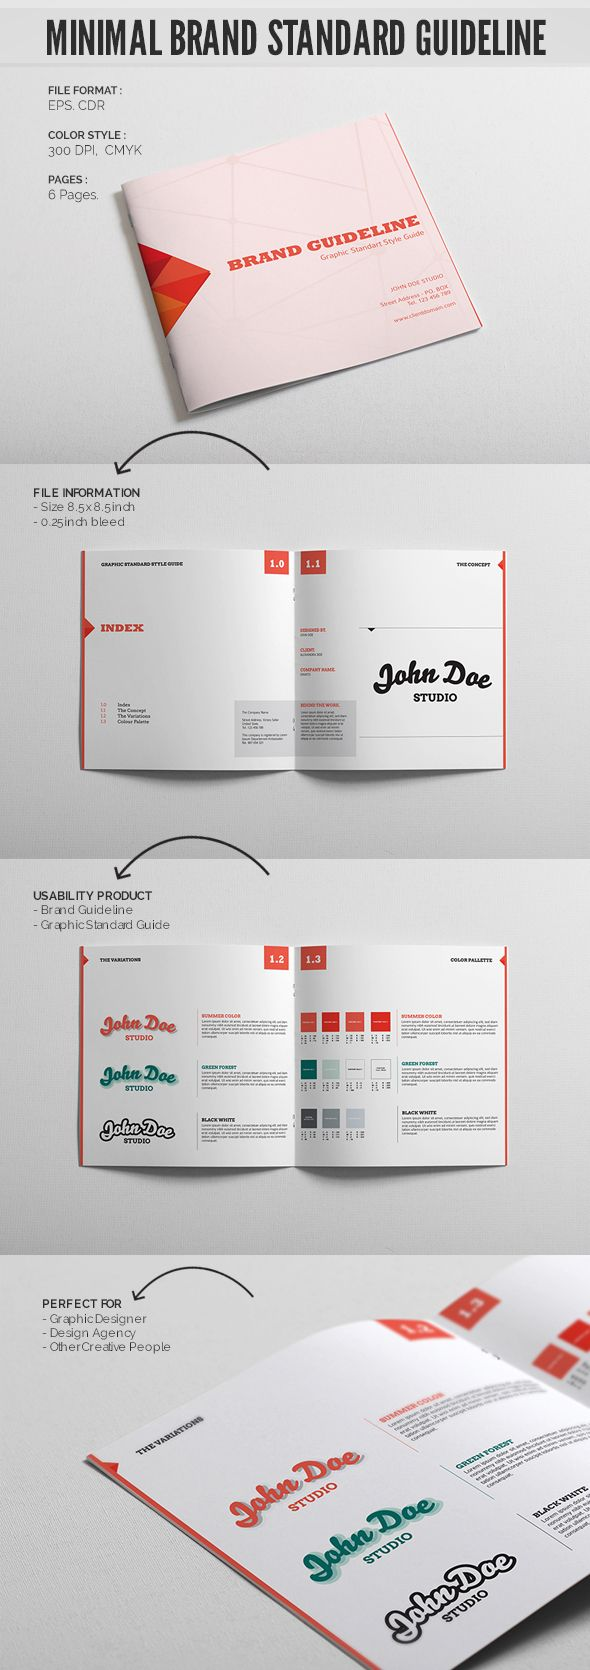 Check the detail here :http://graphicriver.net/item/minimal-brand-standard-guideline-template/4382237?WT.ac=portfolio&WT.seg_1=portfolio&WT.z_author=Firmansa